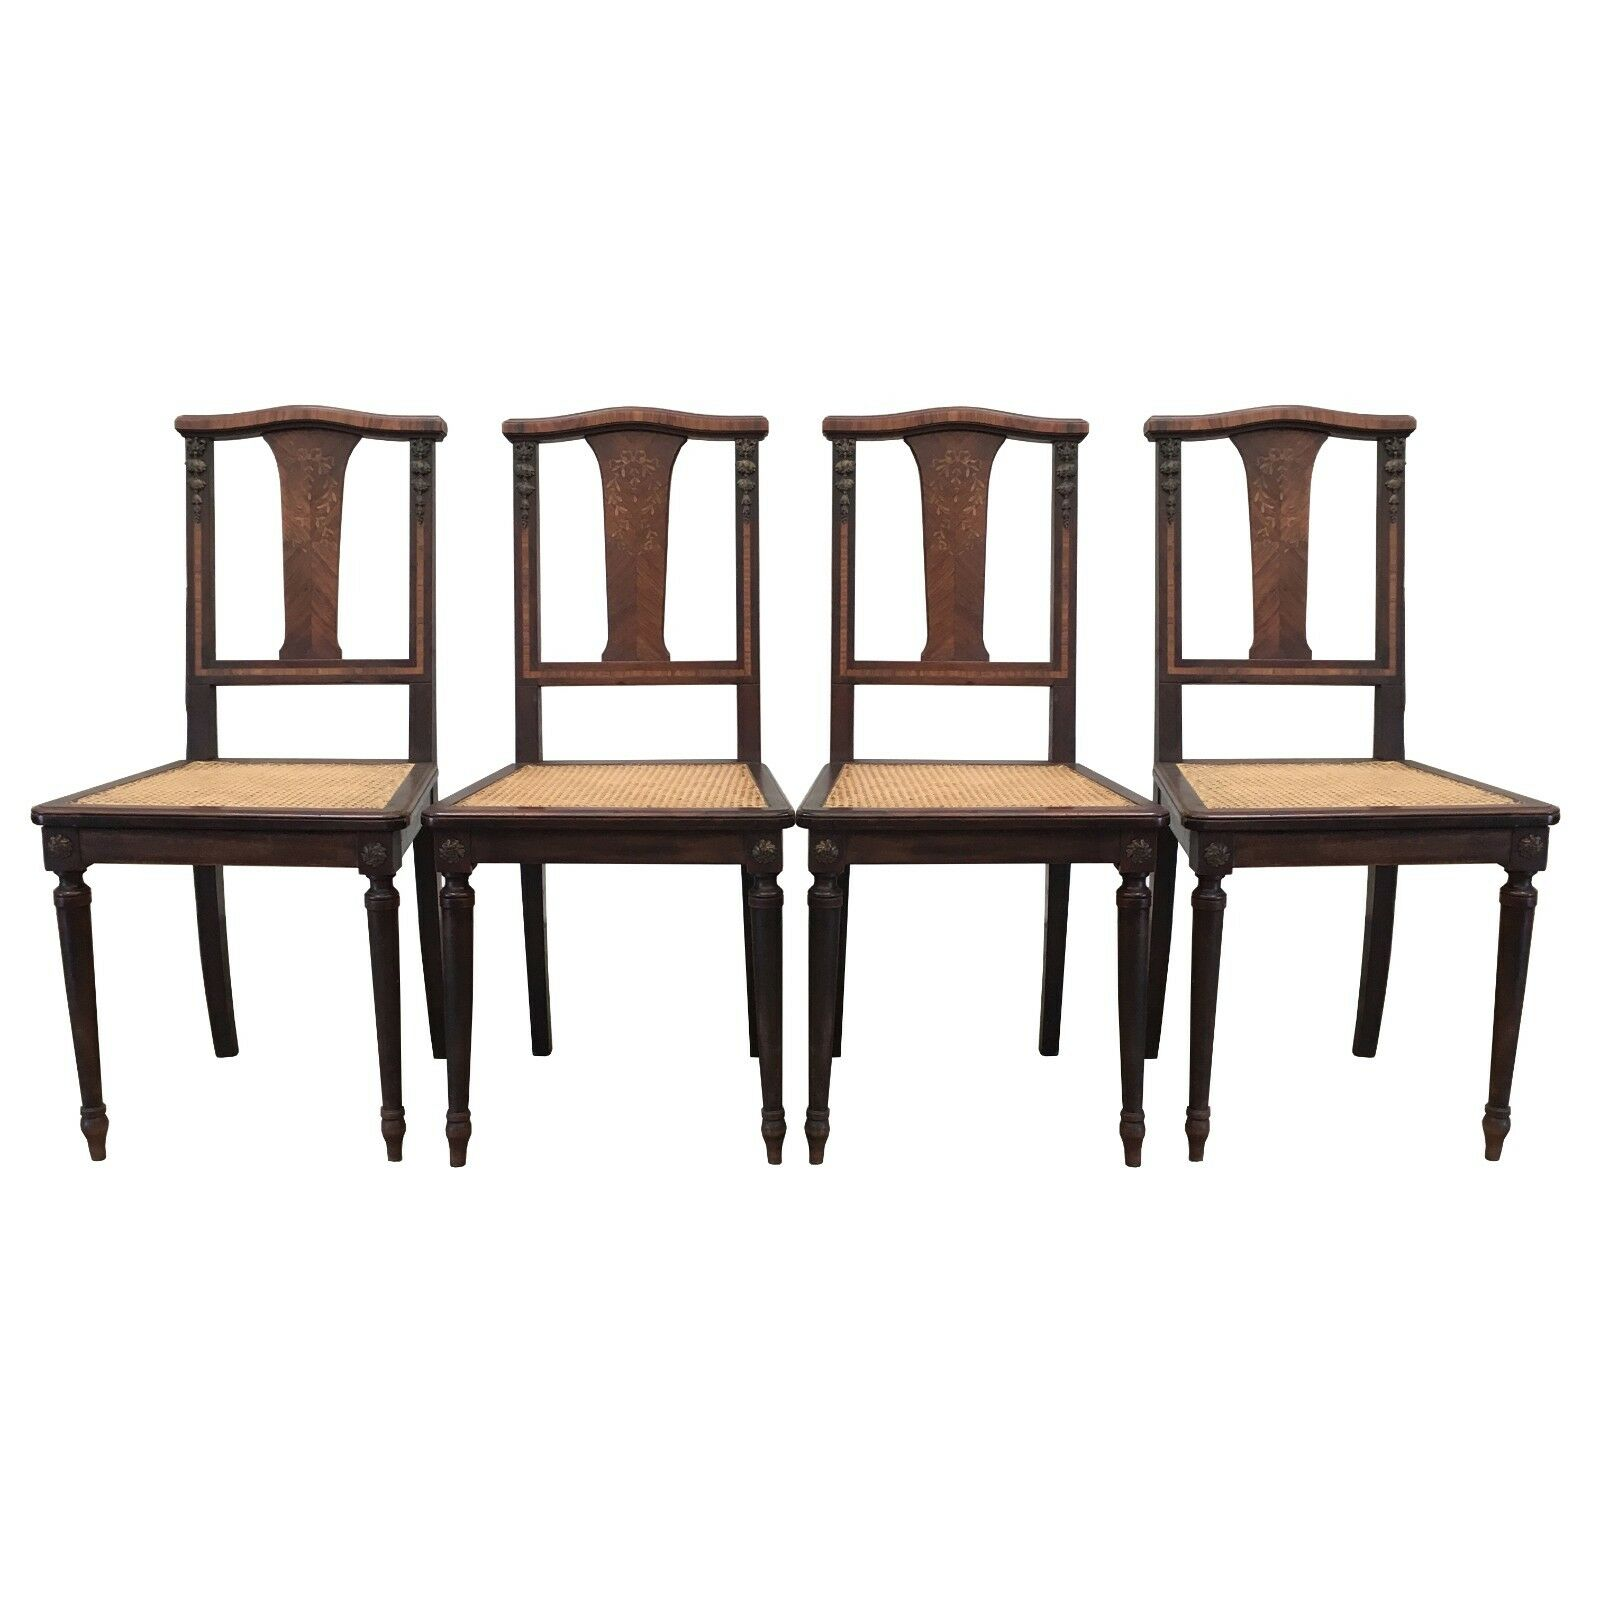 French Antique Dining Chairs With Cane Seats 1 Of 8Only 1 Available ...